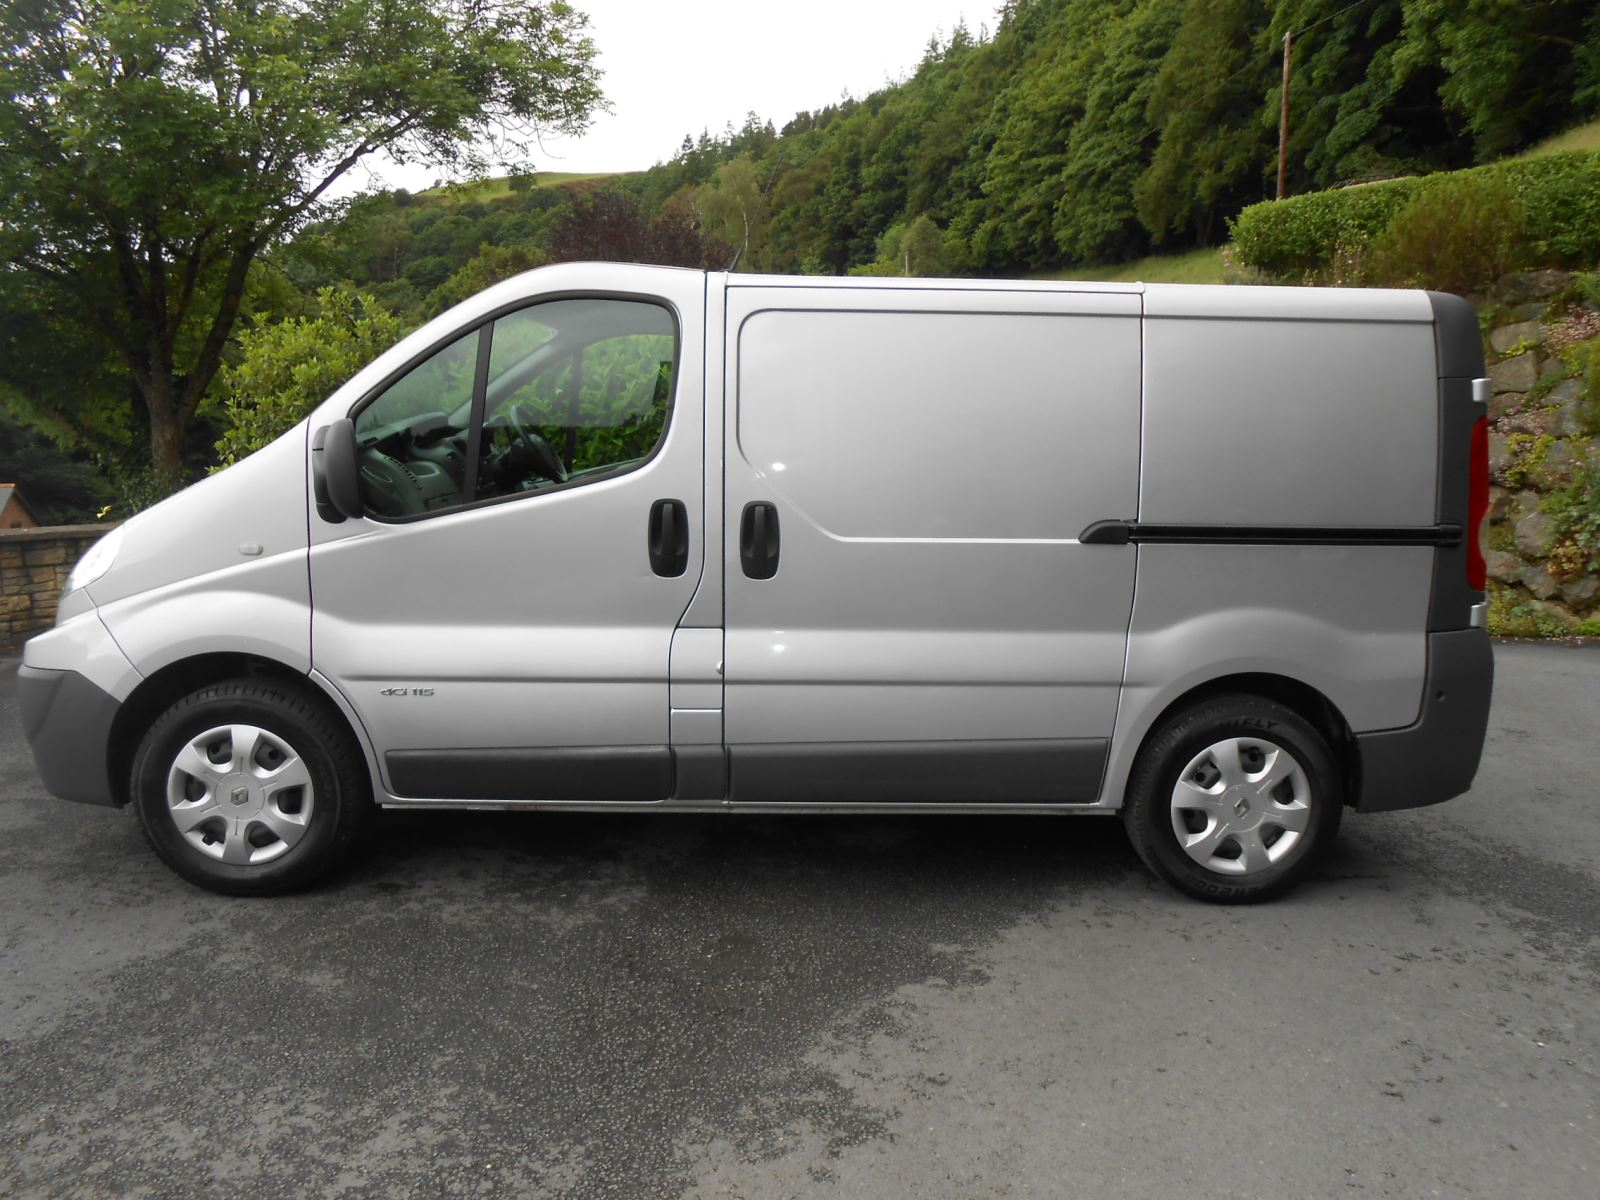 Renault Traffic 2 0 Dci 115 Sl29 Car For Sale Llanidloes